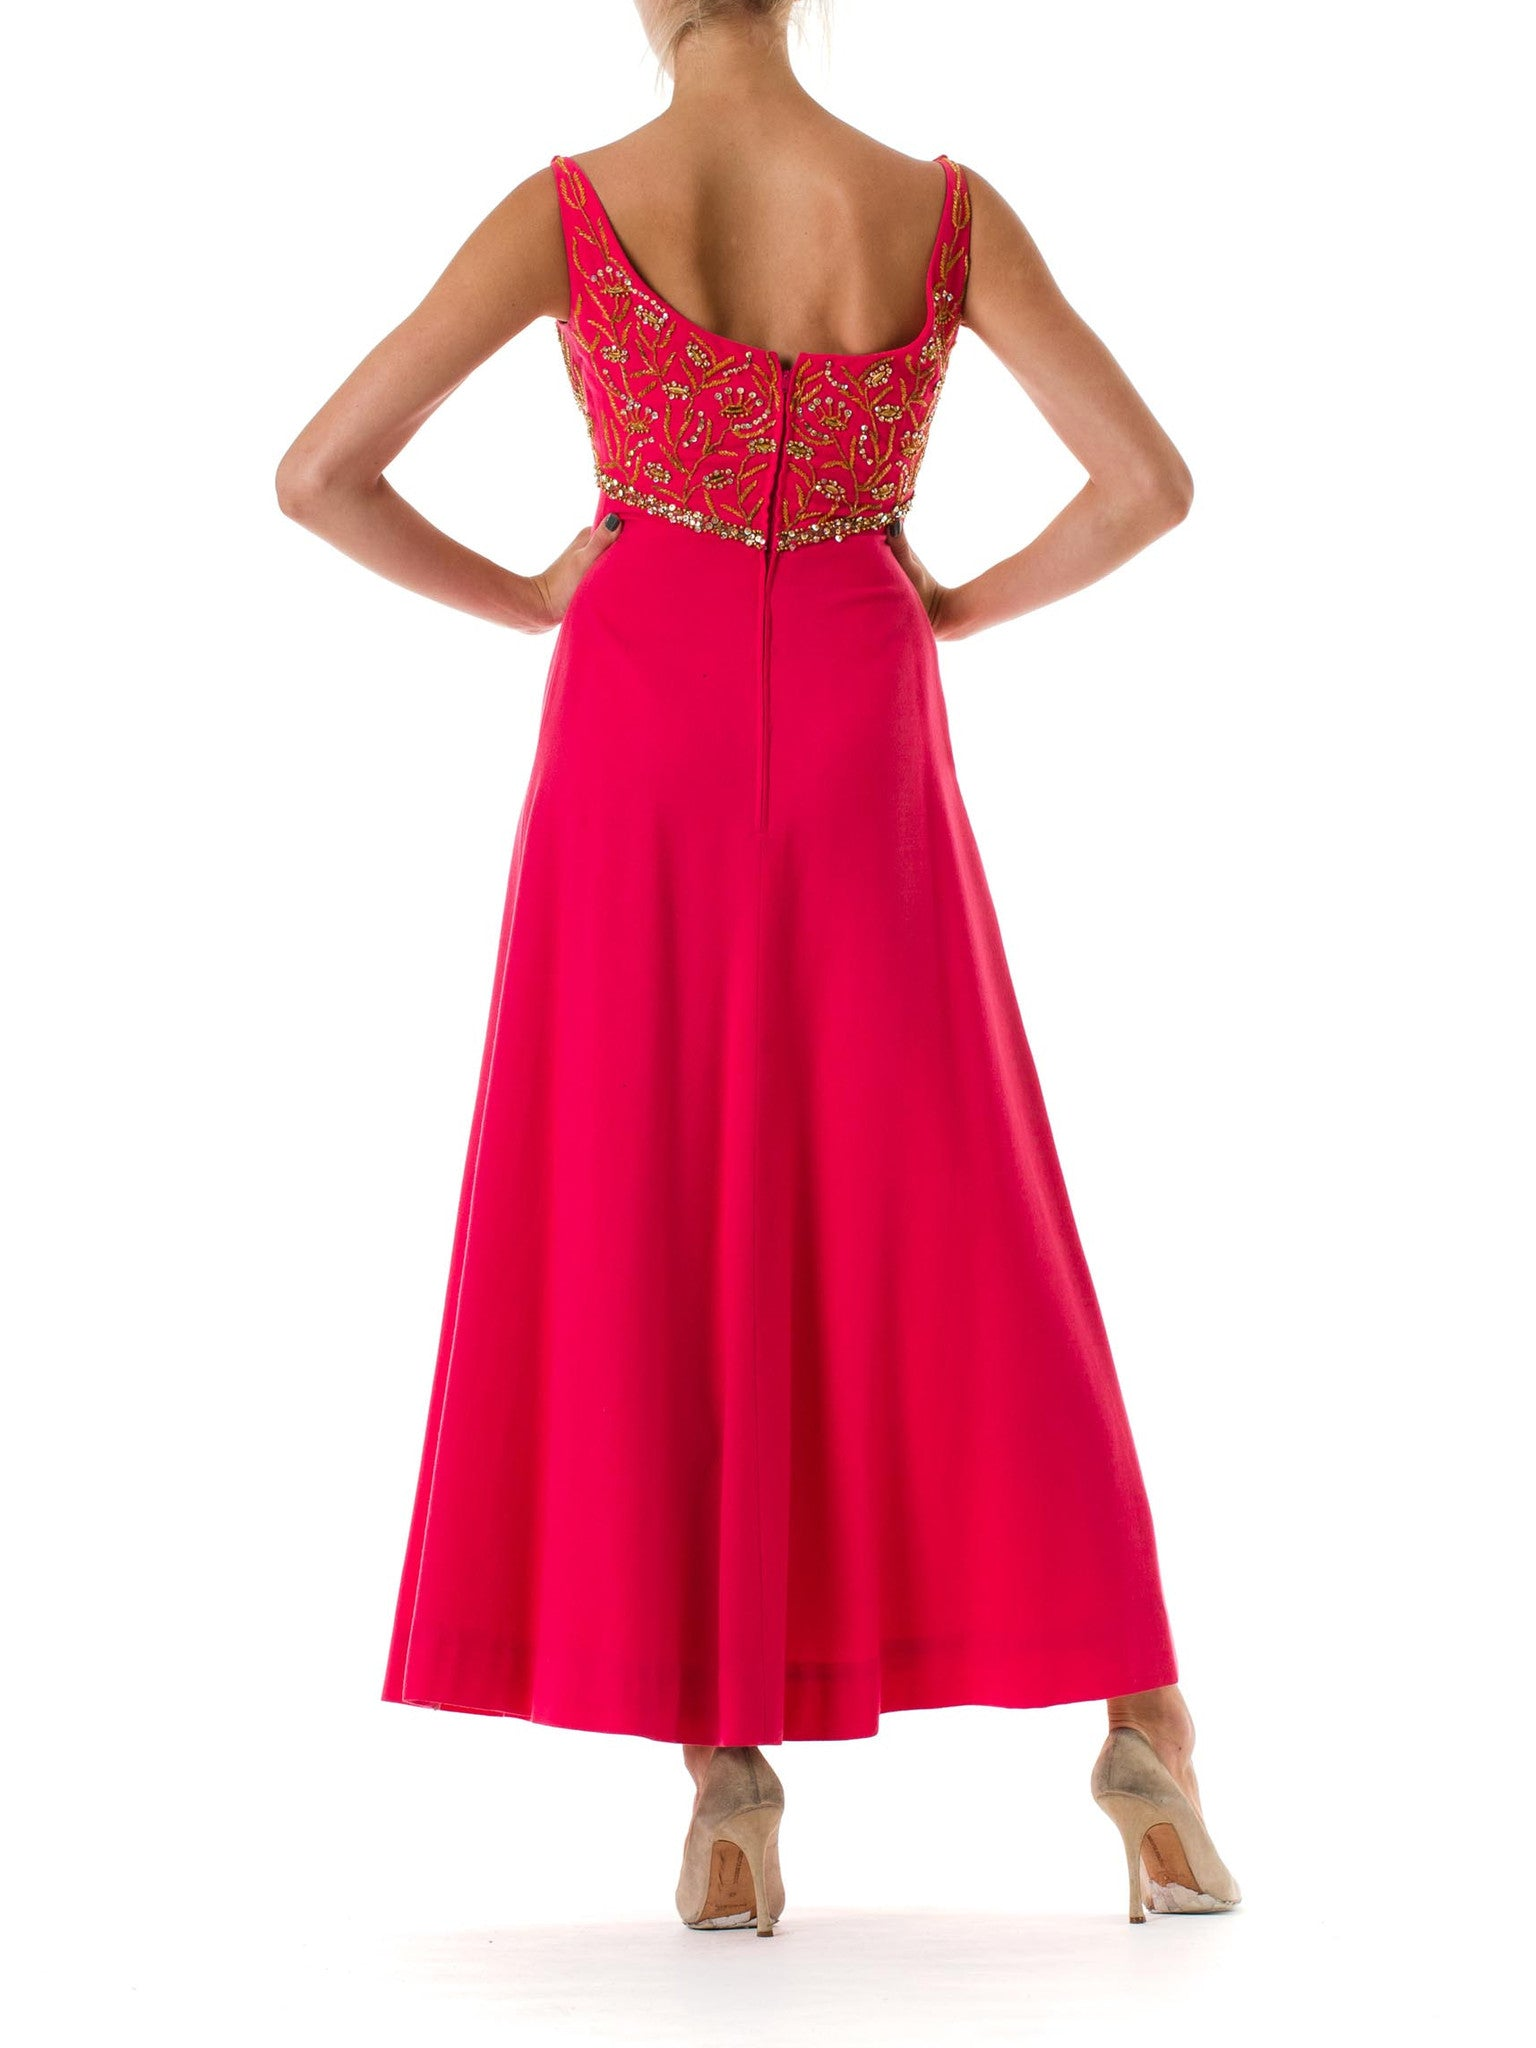 1960S MALCOLM STARR Hot Pink Wool Empire Waist Gown Beaded With Golden Crystal Flowers